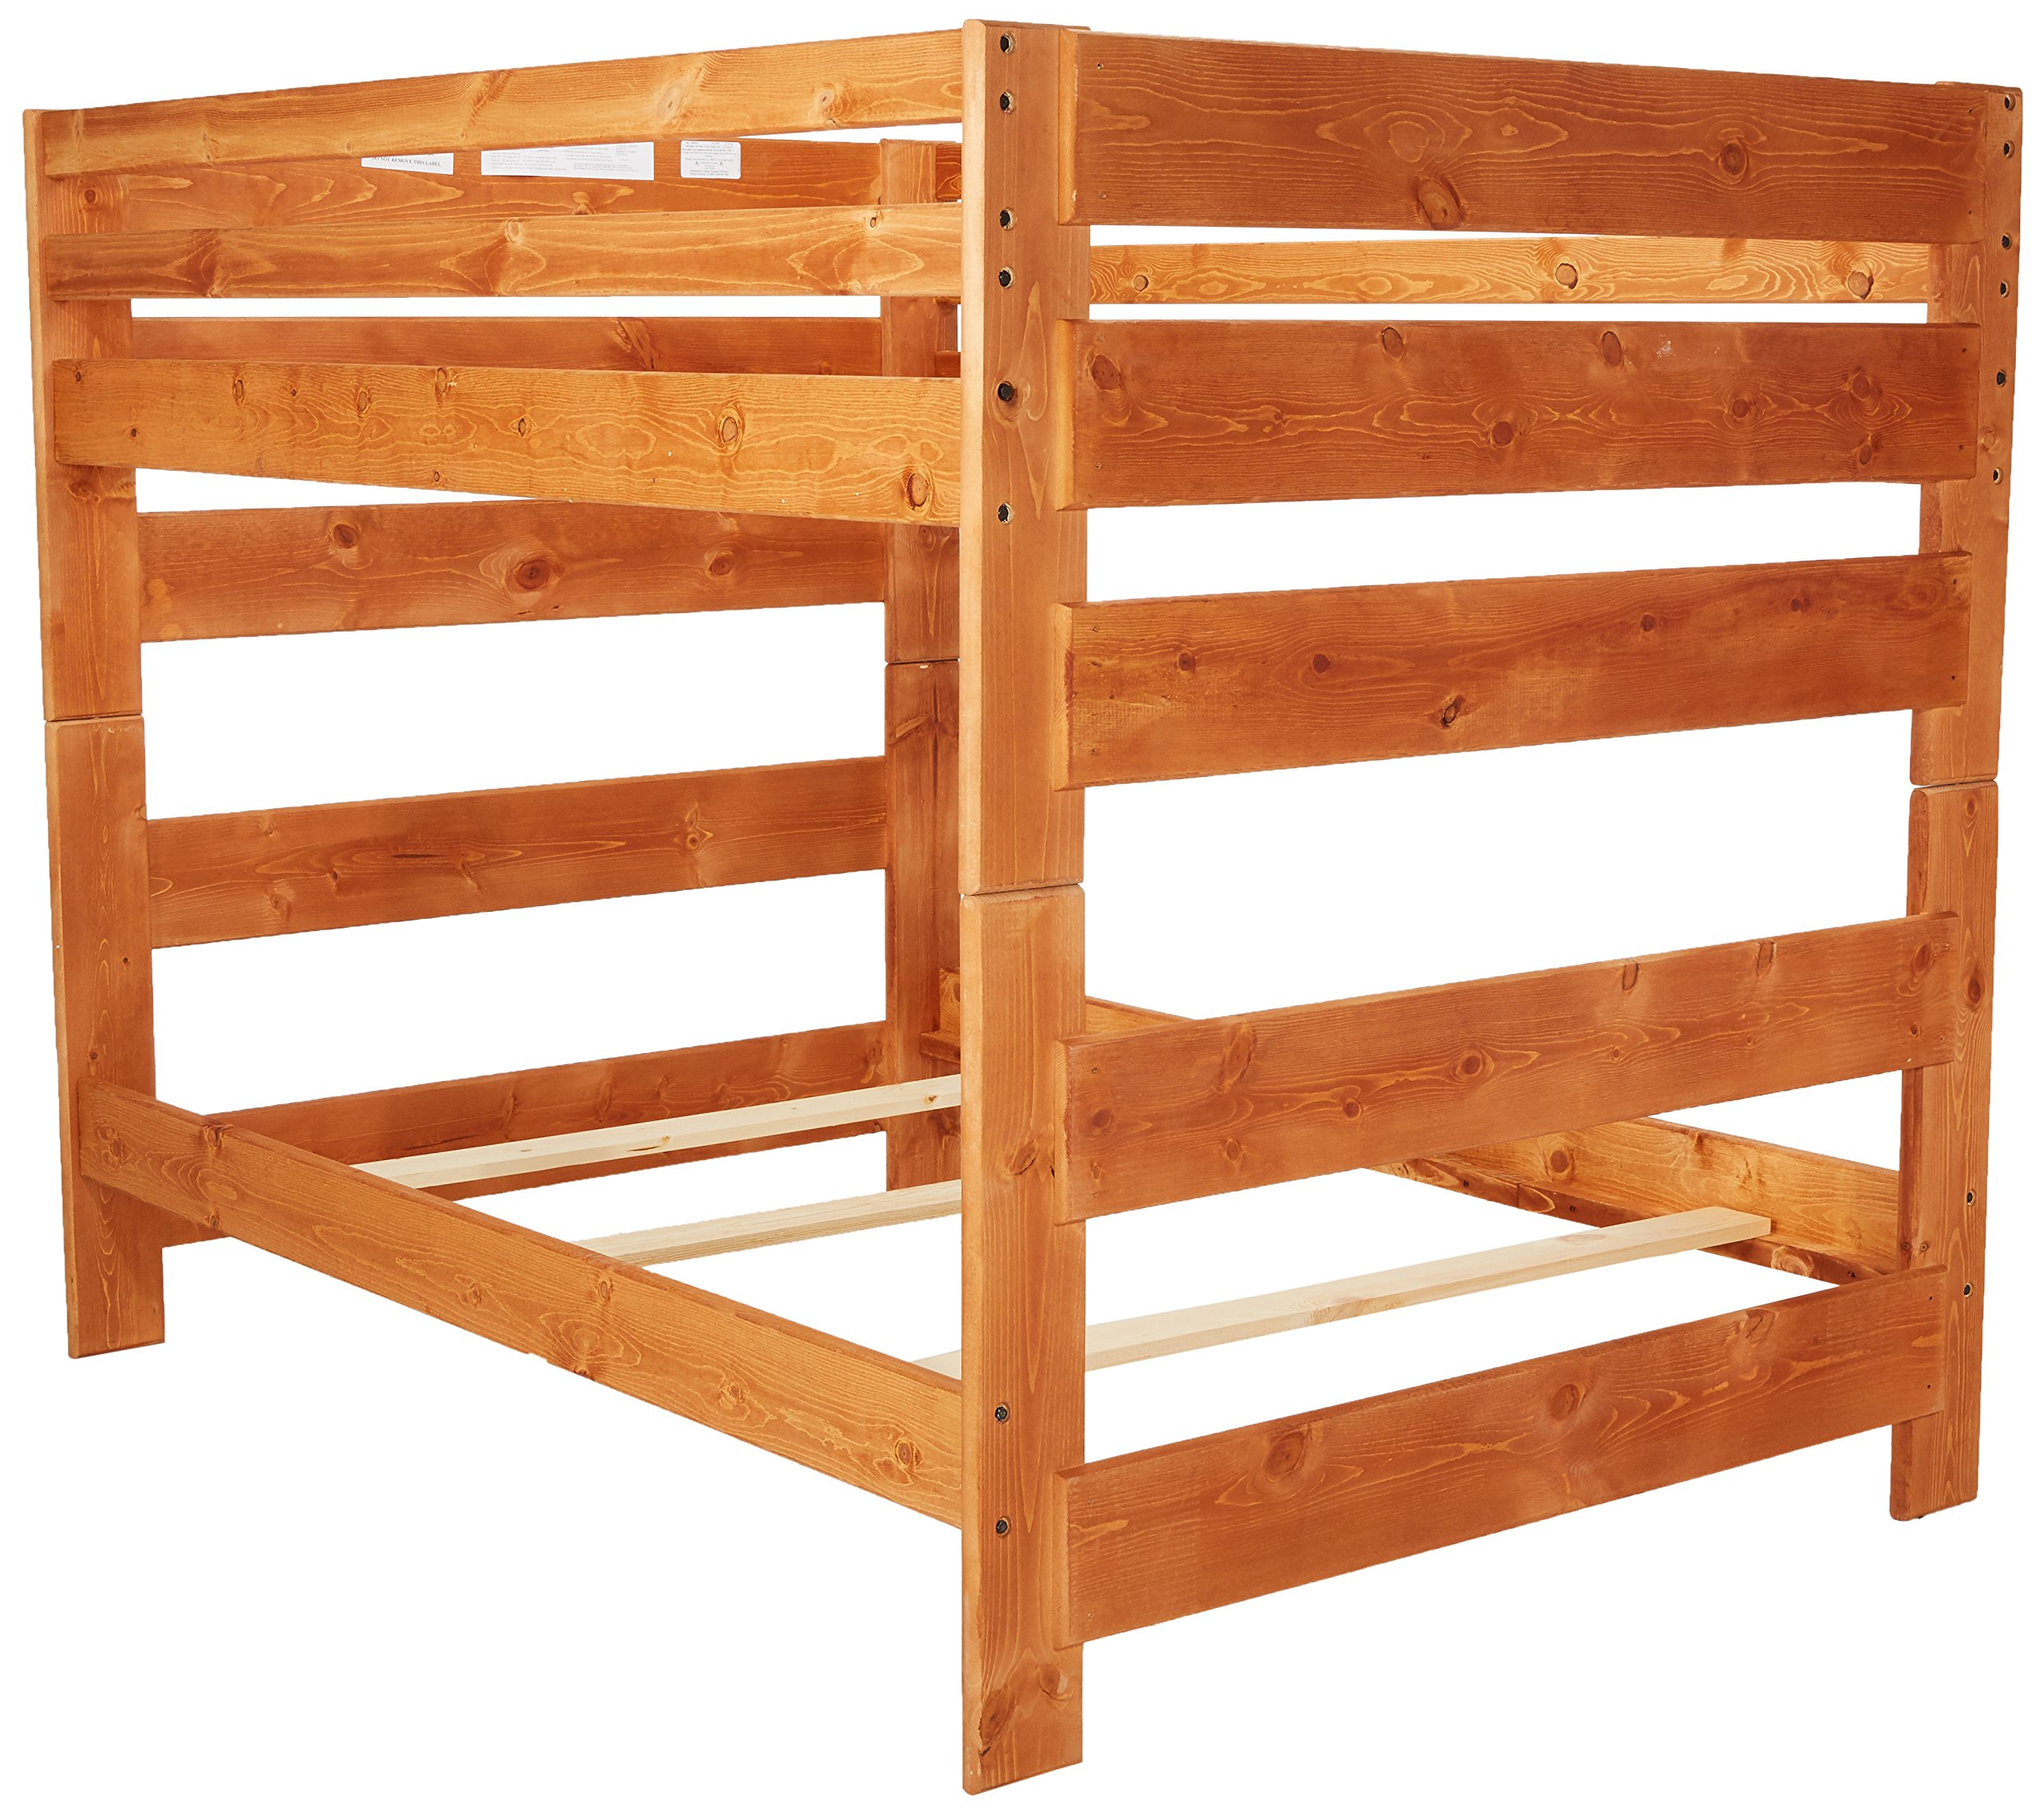 Coaster Home Furnishings  Wrangle Hill Modern Rustic Bunk Bed ( Made in USA ) - Full over Full - Amber Wash